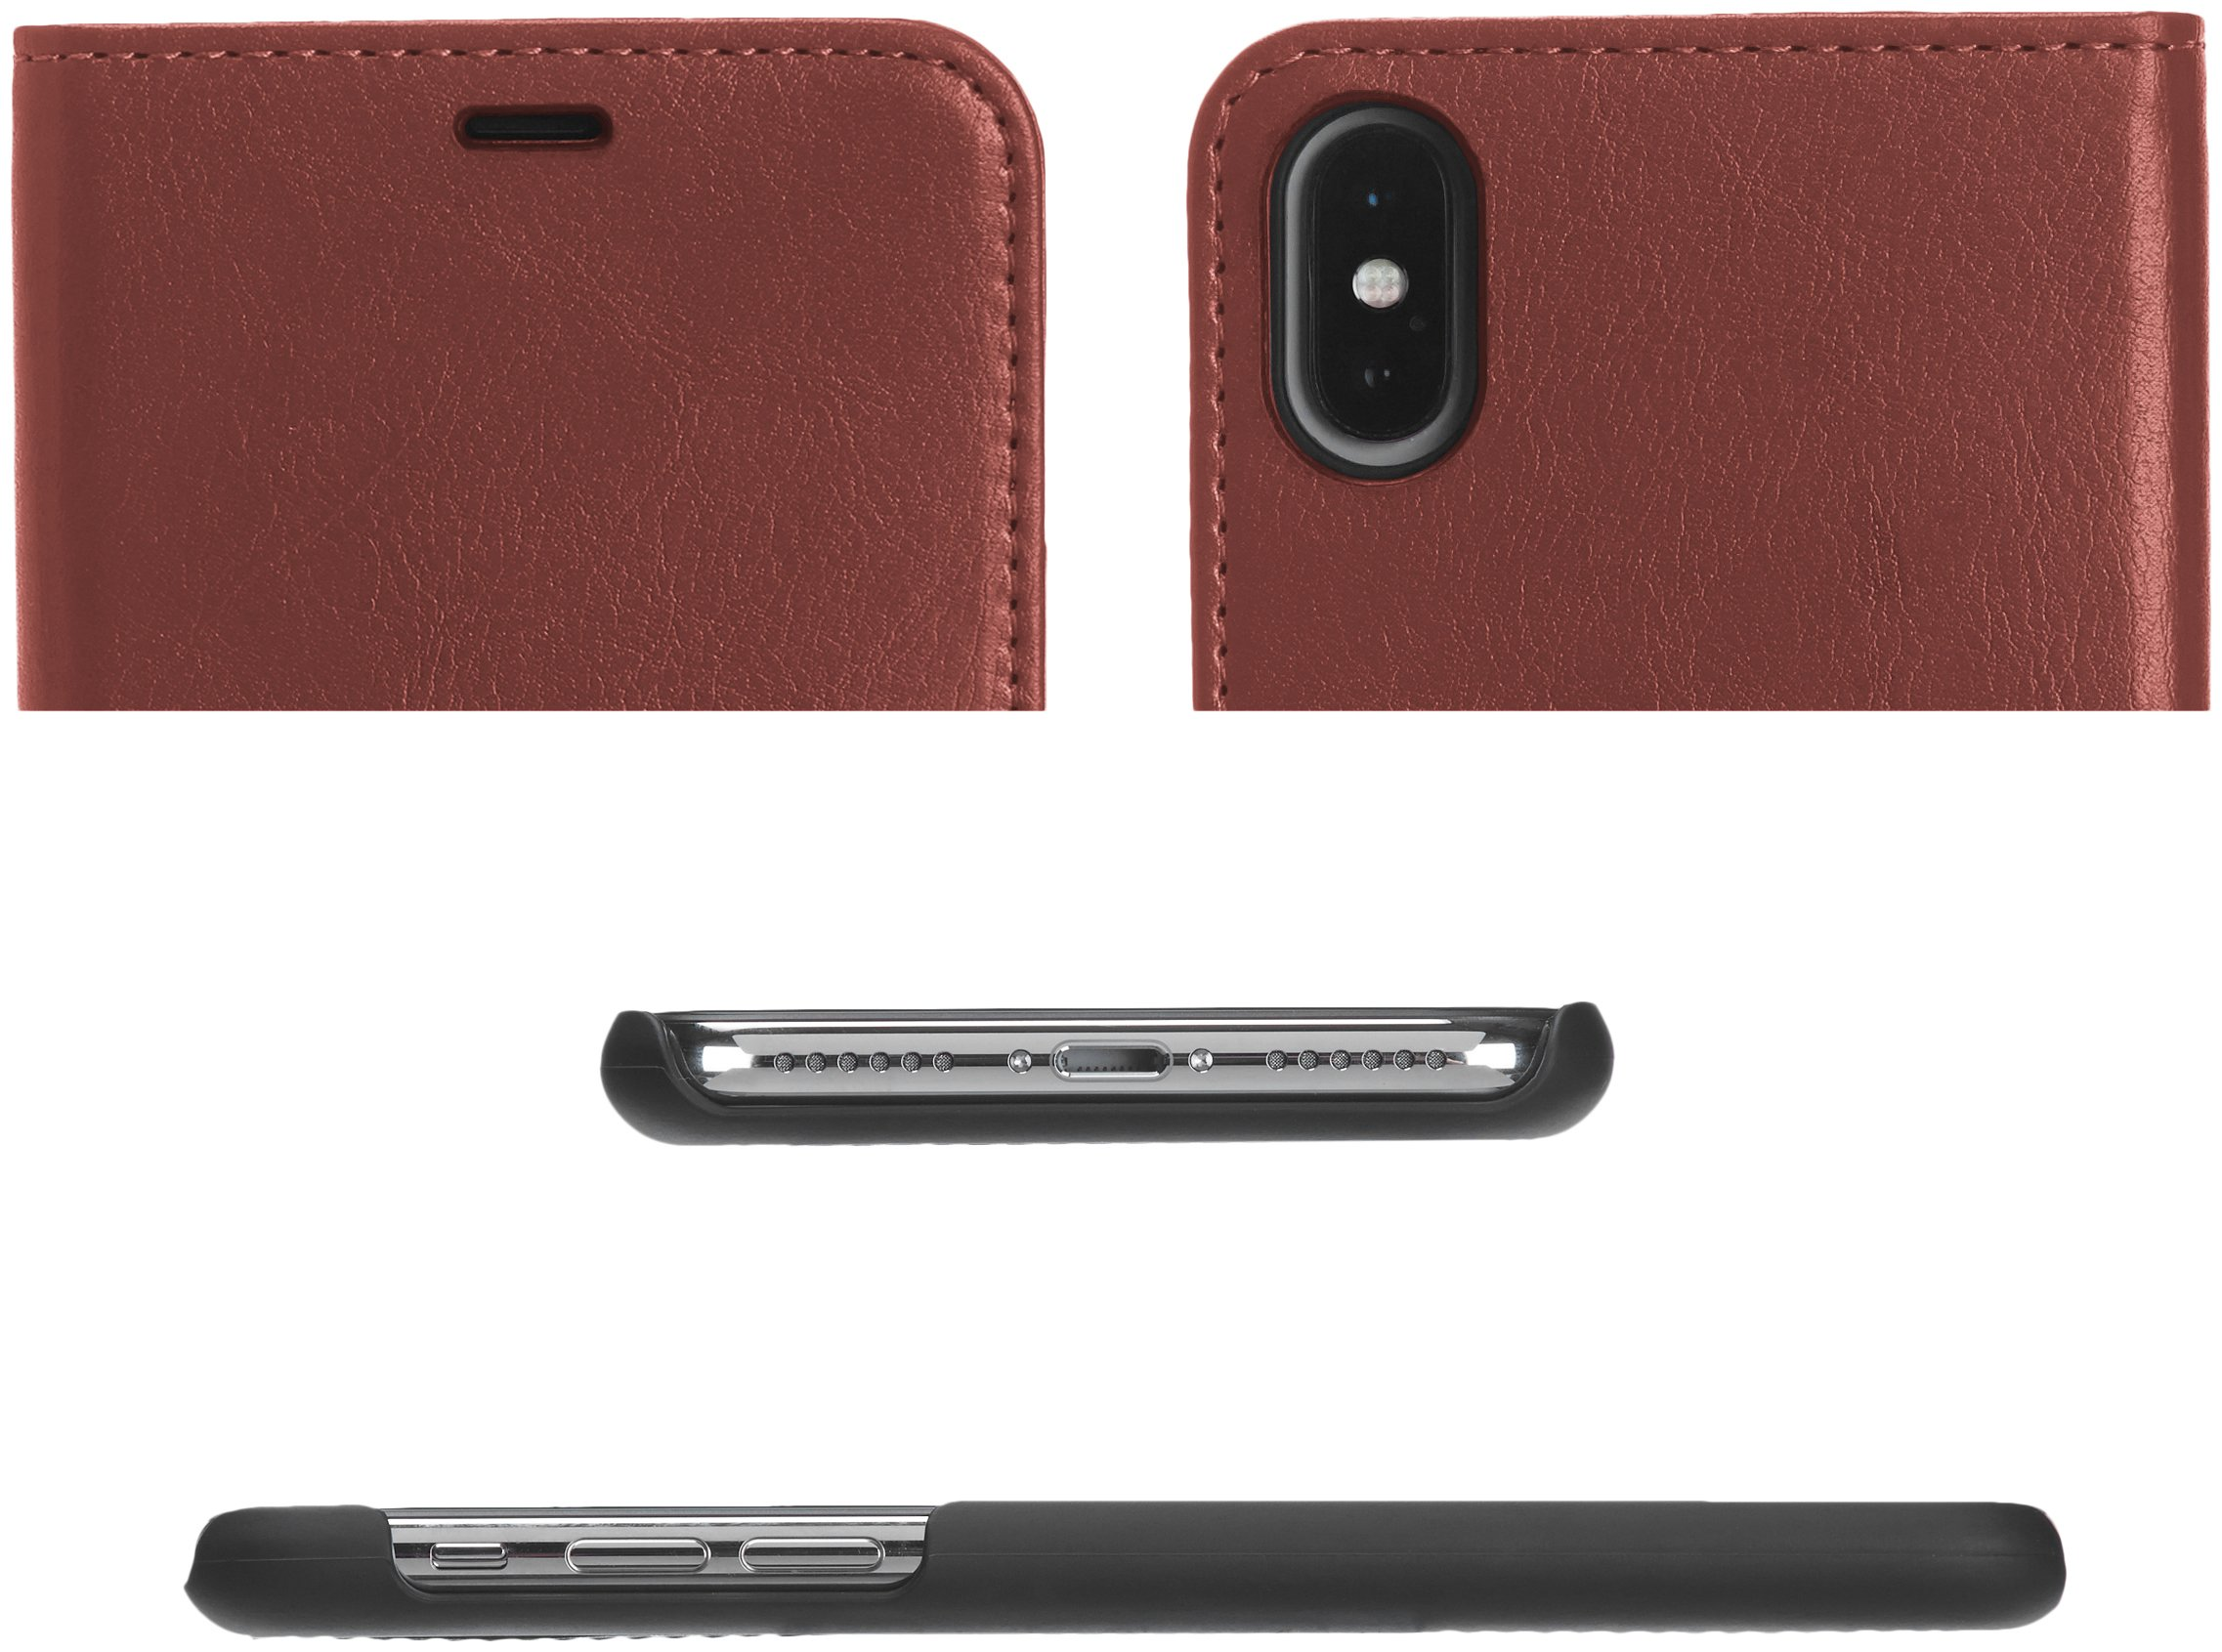 AmazonBasics iPhone X PU Leather Wallet Detachable Case, Dark Brown by AmazonBasics (Image #2)